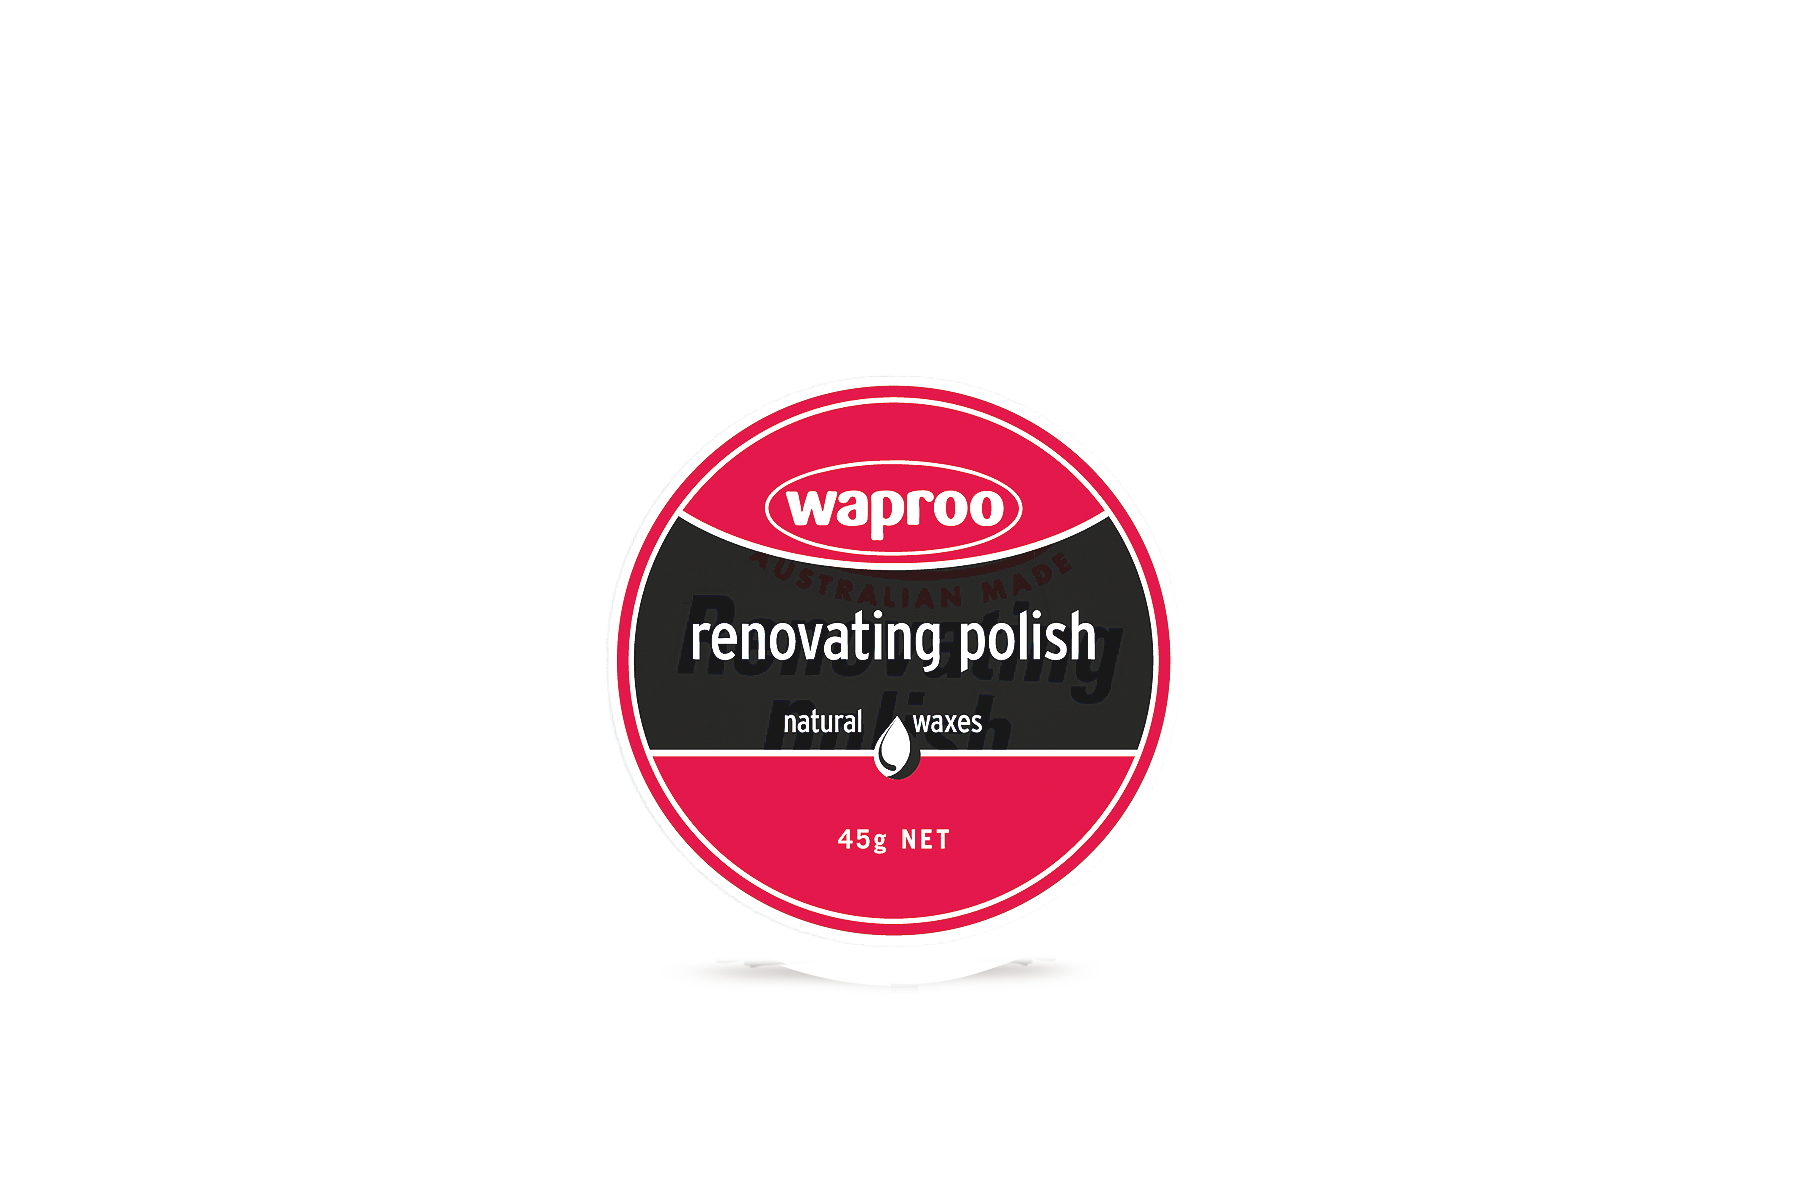 Https Mckinlays Co Nz Shop Waproo Renovating Polish